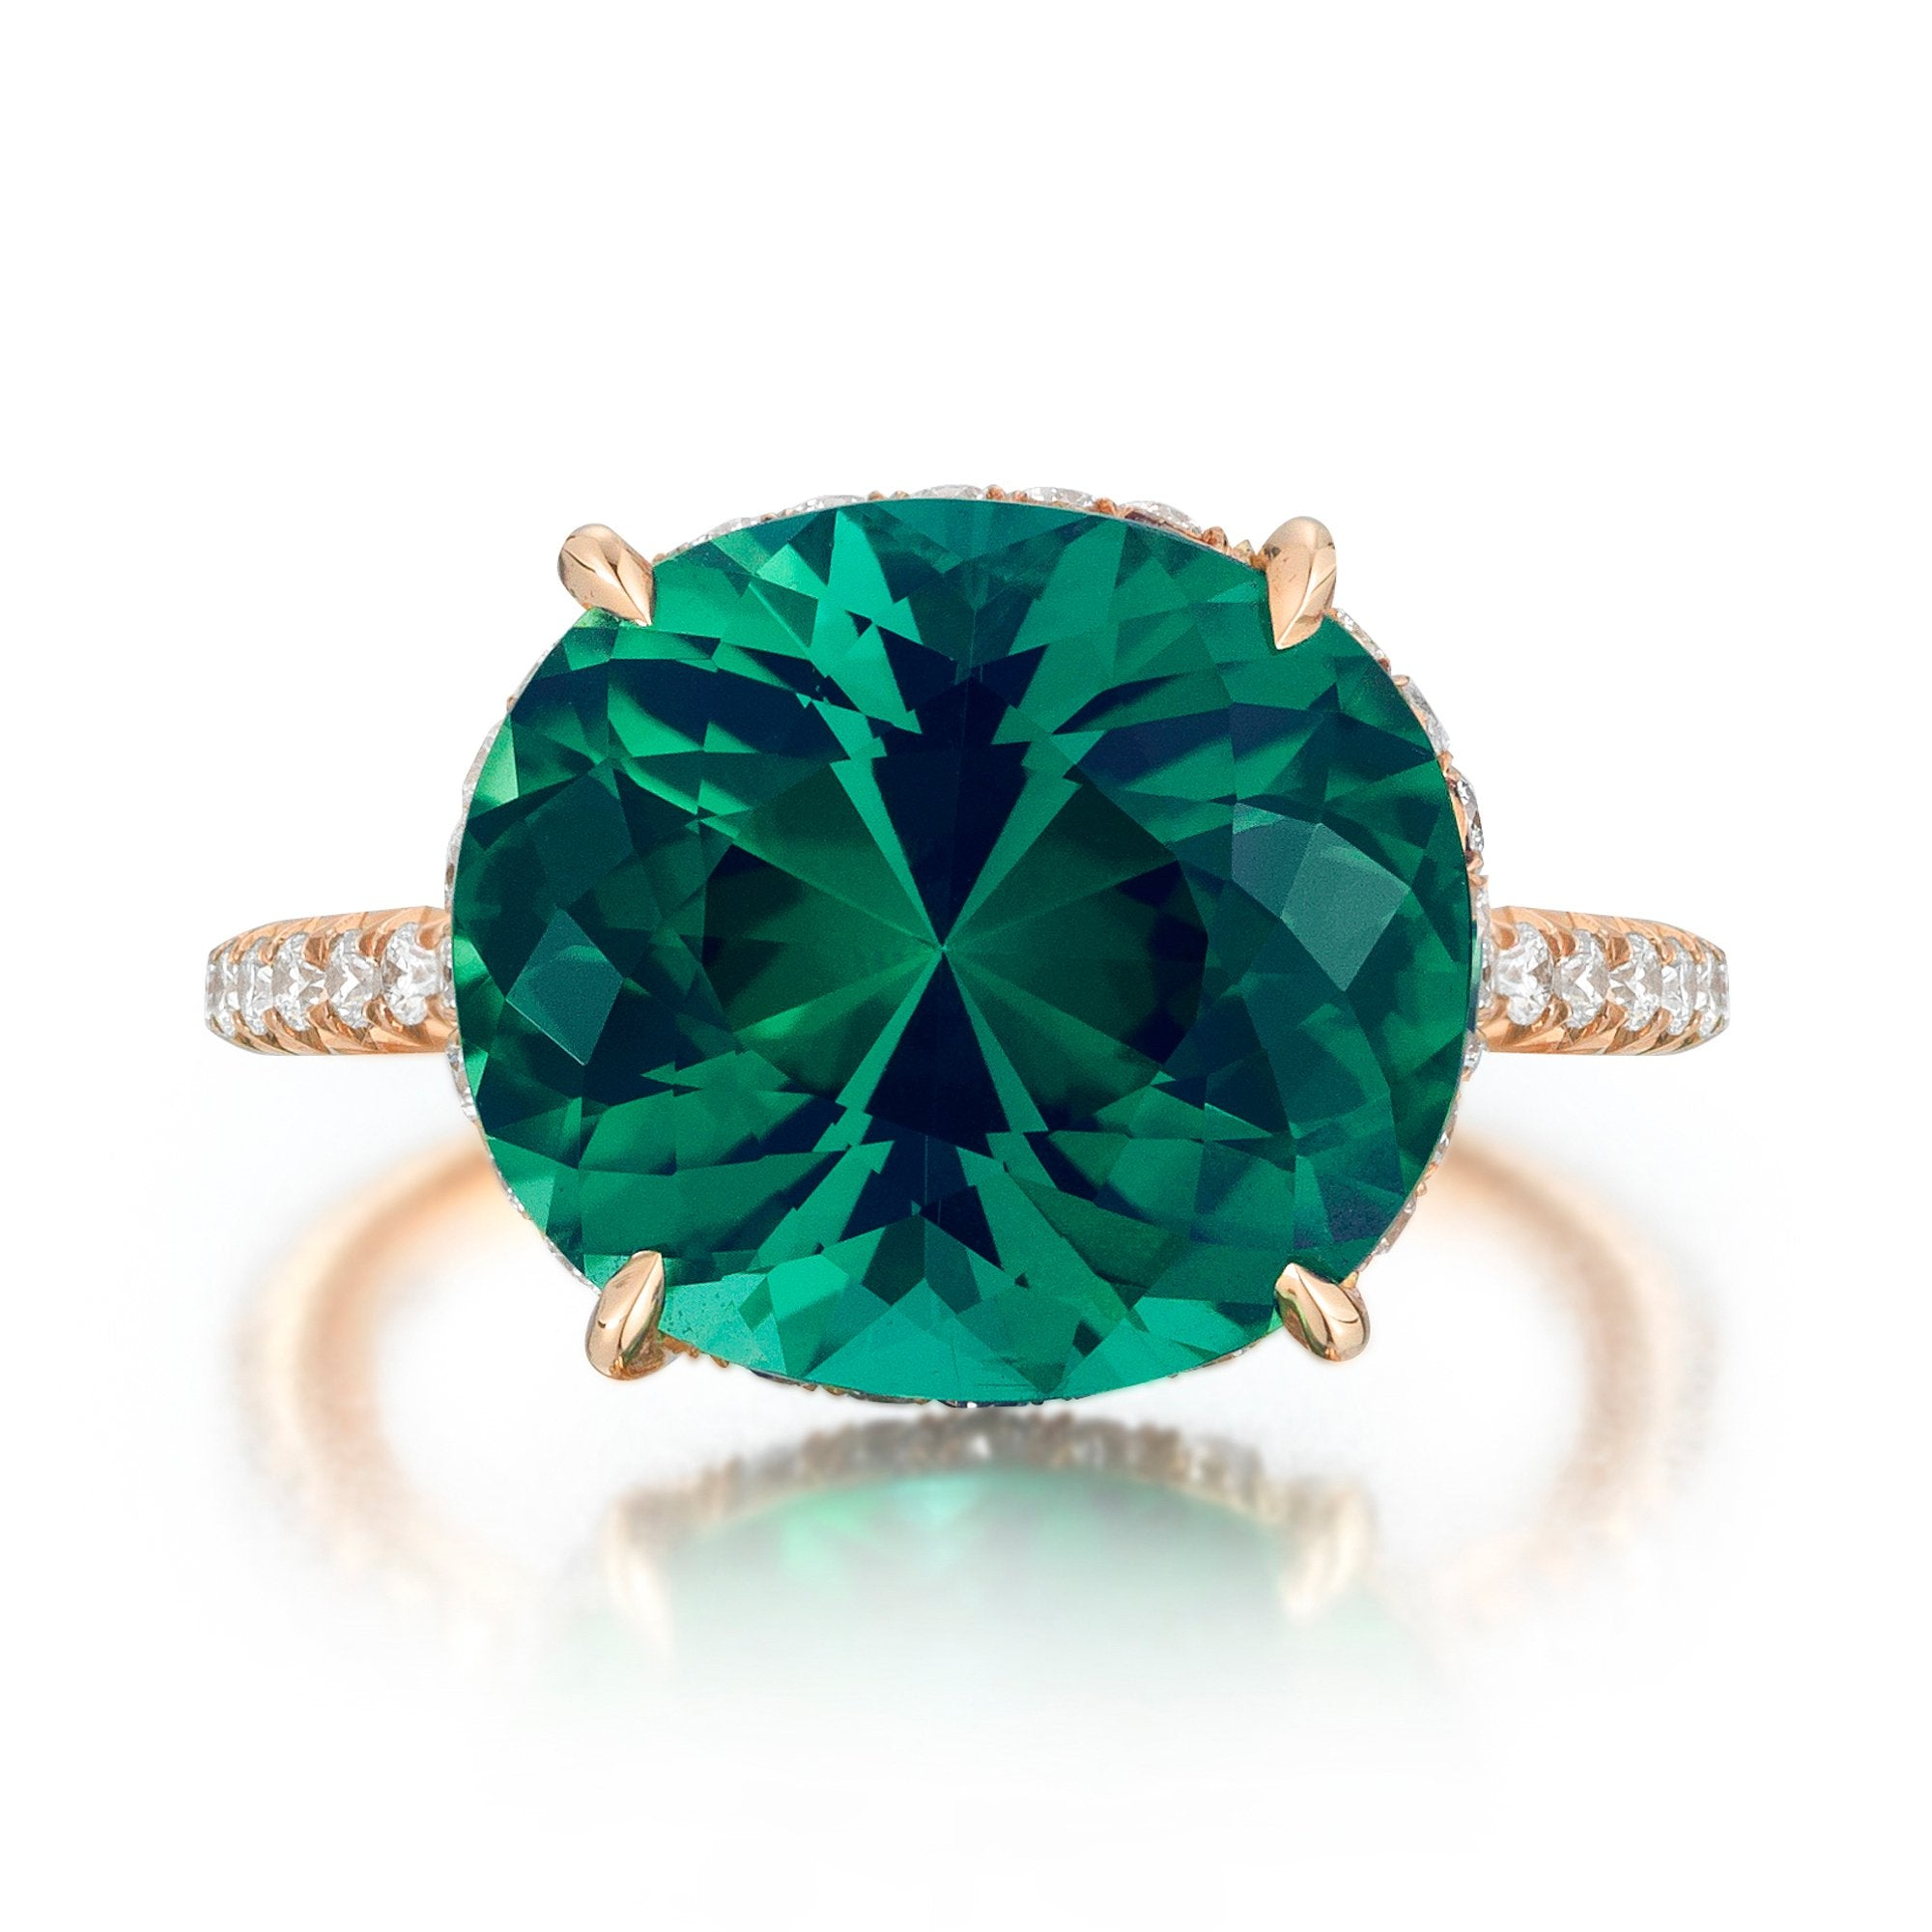 engagement large ring image rings gold tourmaline green white gemstone jewellery diamond